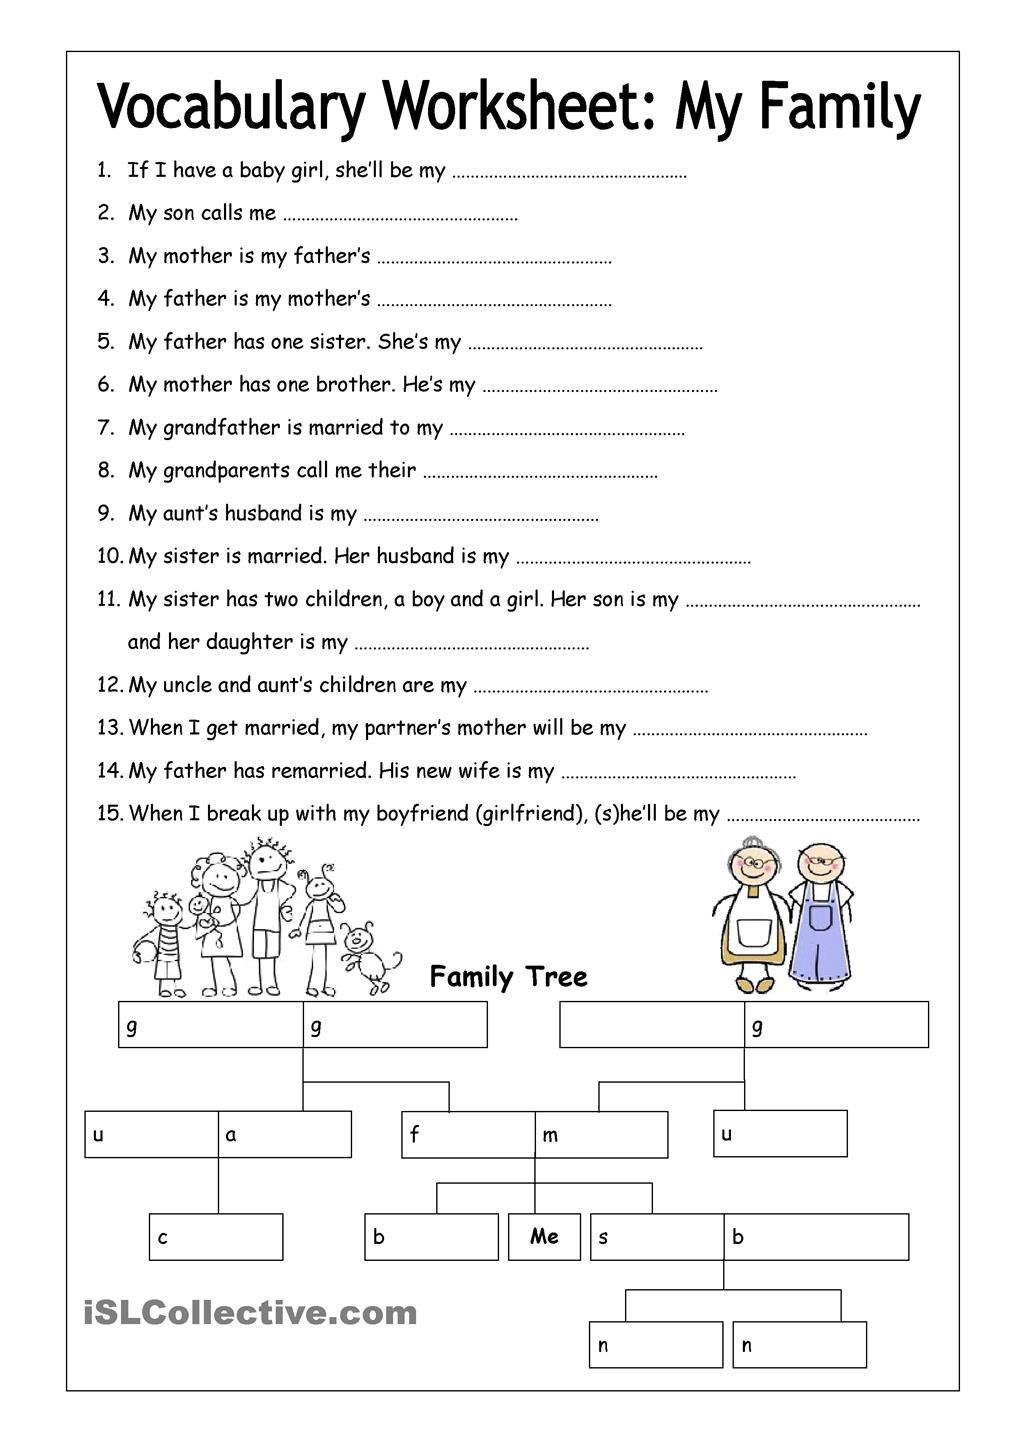 8th Grade Vocabulary Worksheets Pdf Vocabulary Worksheet My Family Medium